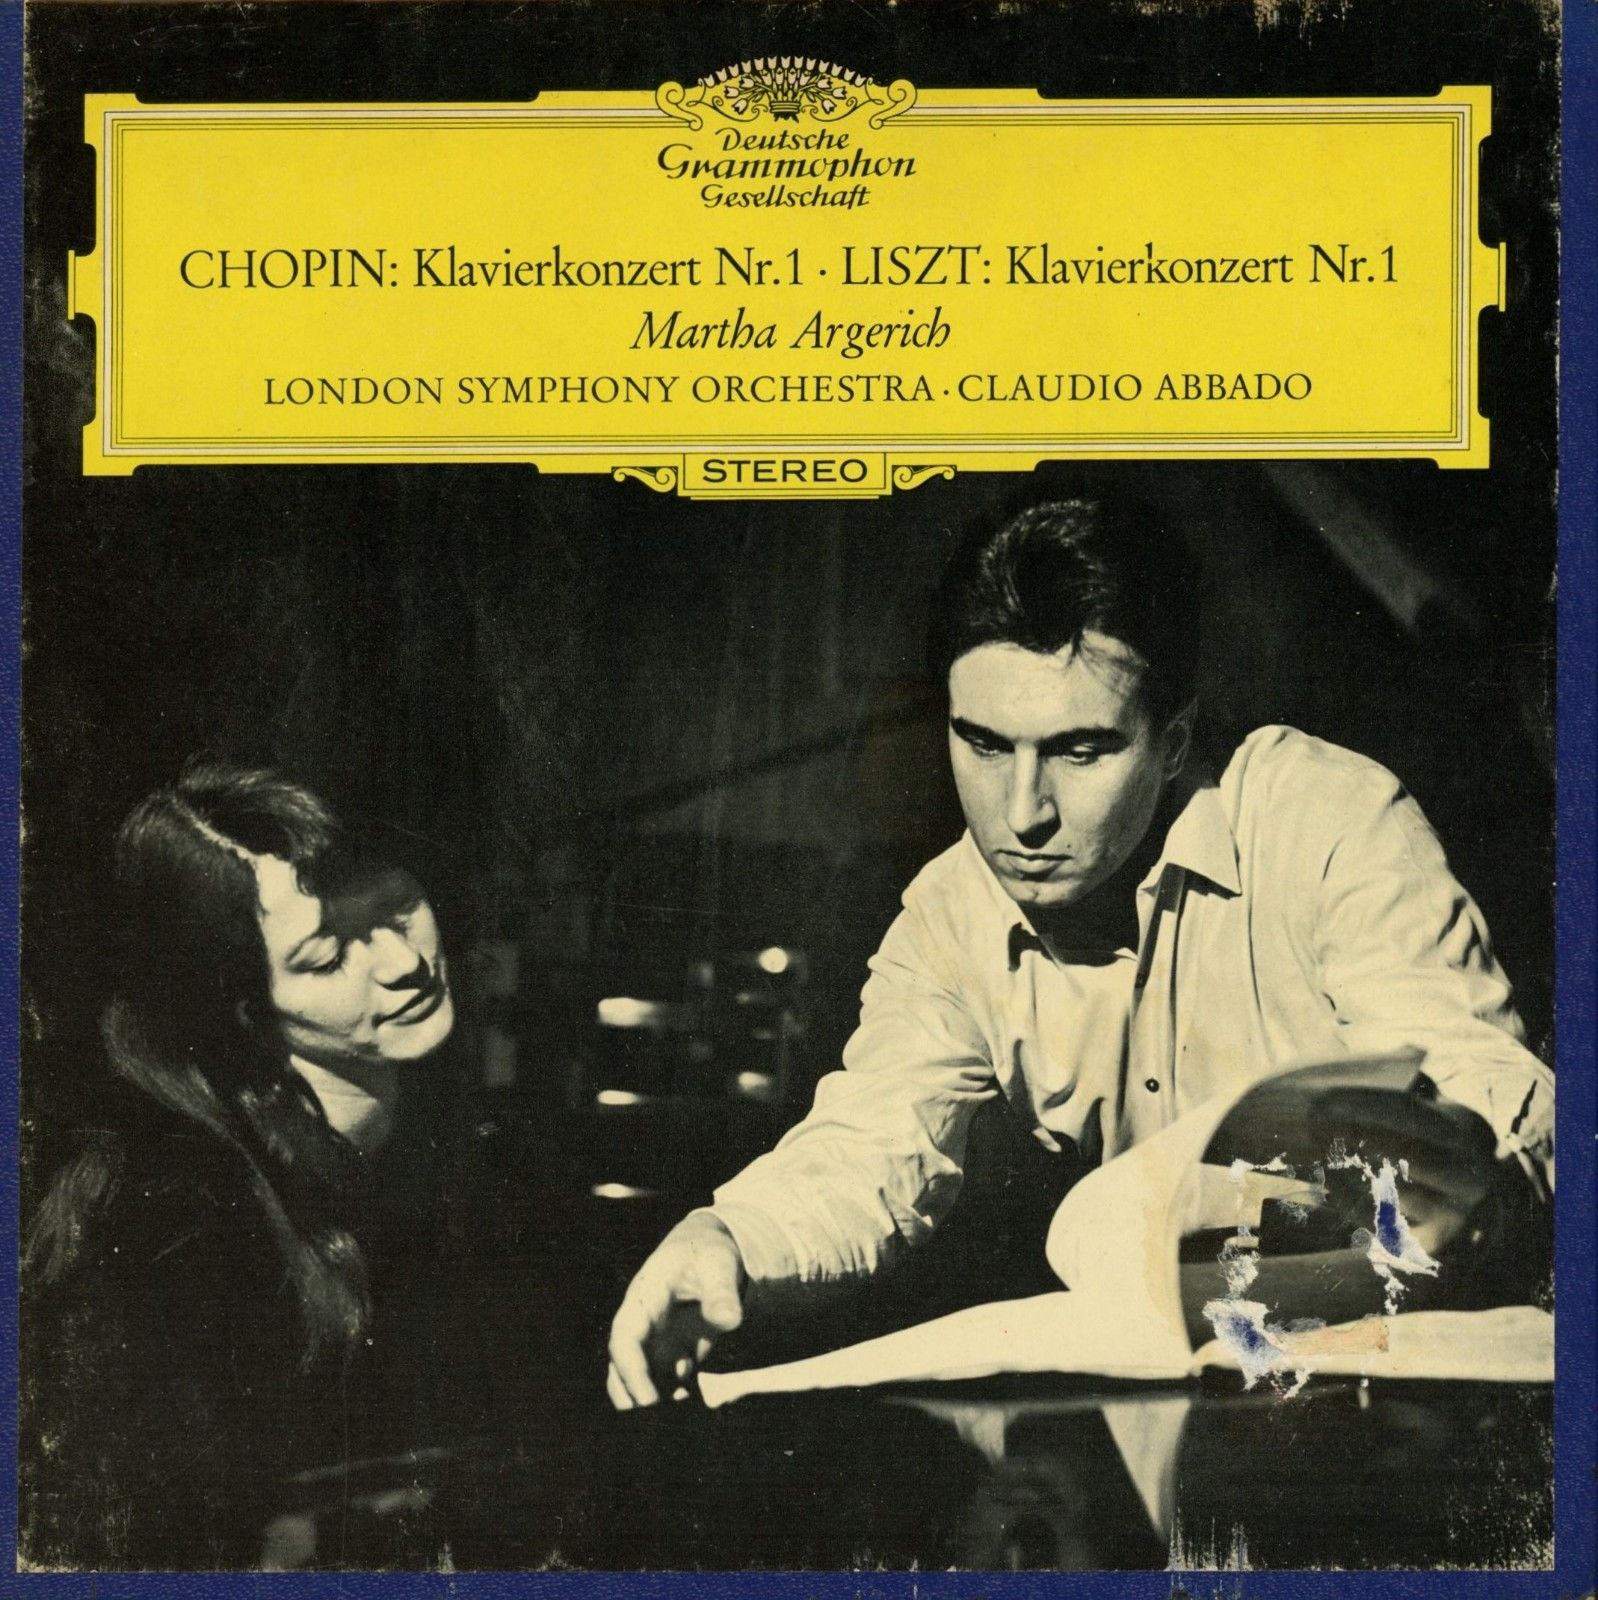 DGG REEL-TO-REEL TAPE: CHOPIN & LISZT - 1ST PIANO CONCERTI / ARGERICH / ABBADO